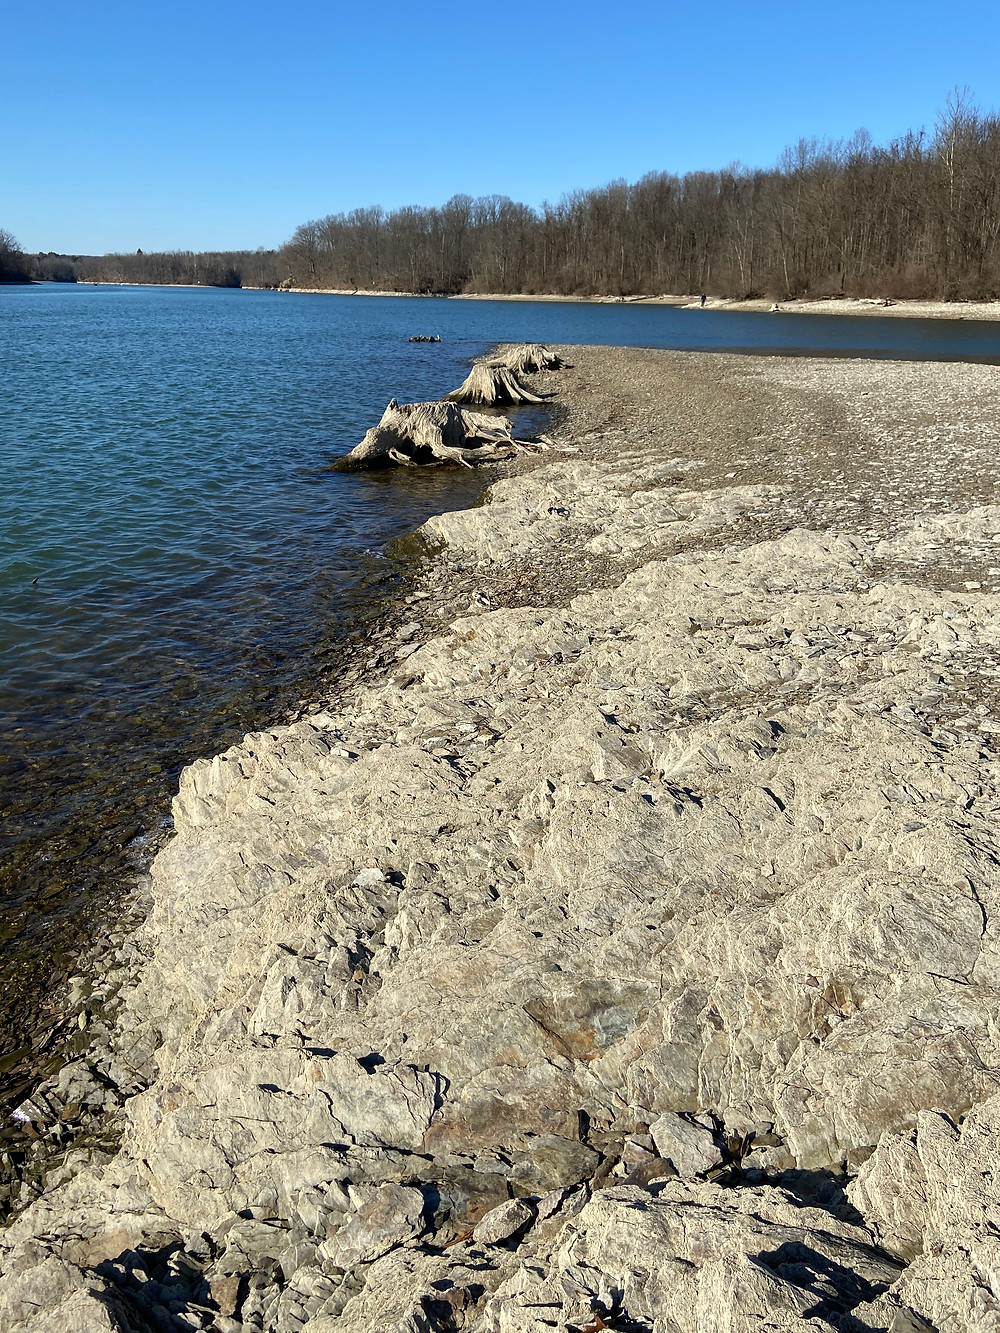 A great example of an offshore prespawn bass fishing location in Pennsylvania. This long point that stretches out into the main lake with deep water on both sides and the main creek channel close by. There is rock and wood along with transitions from sand to gravel. Please note that this area along with the visible shoreline is underwater during the spring and summer when Blue Marsh Lake raises its water levels.